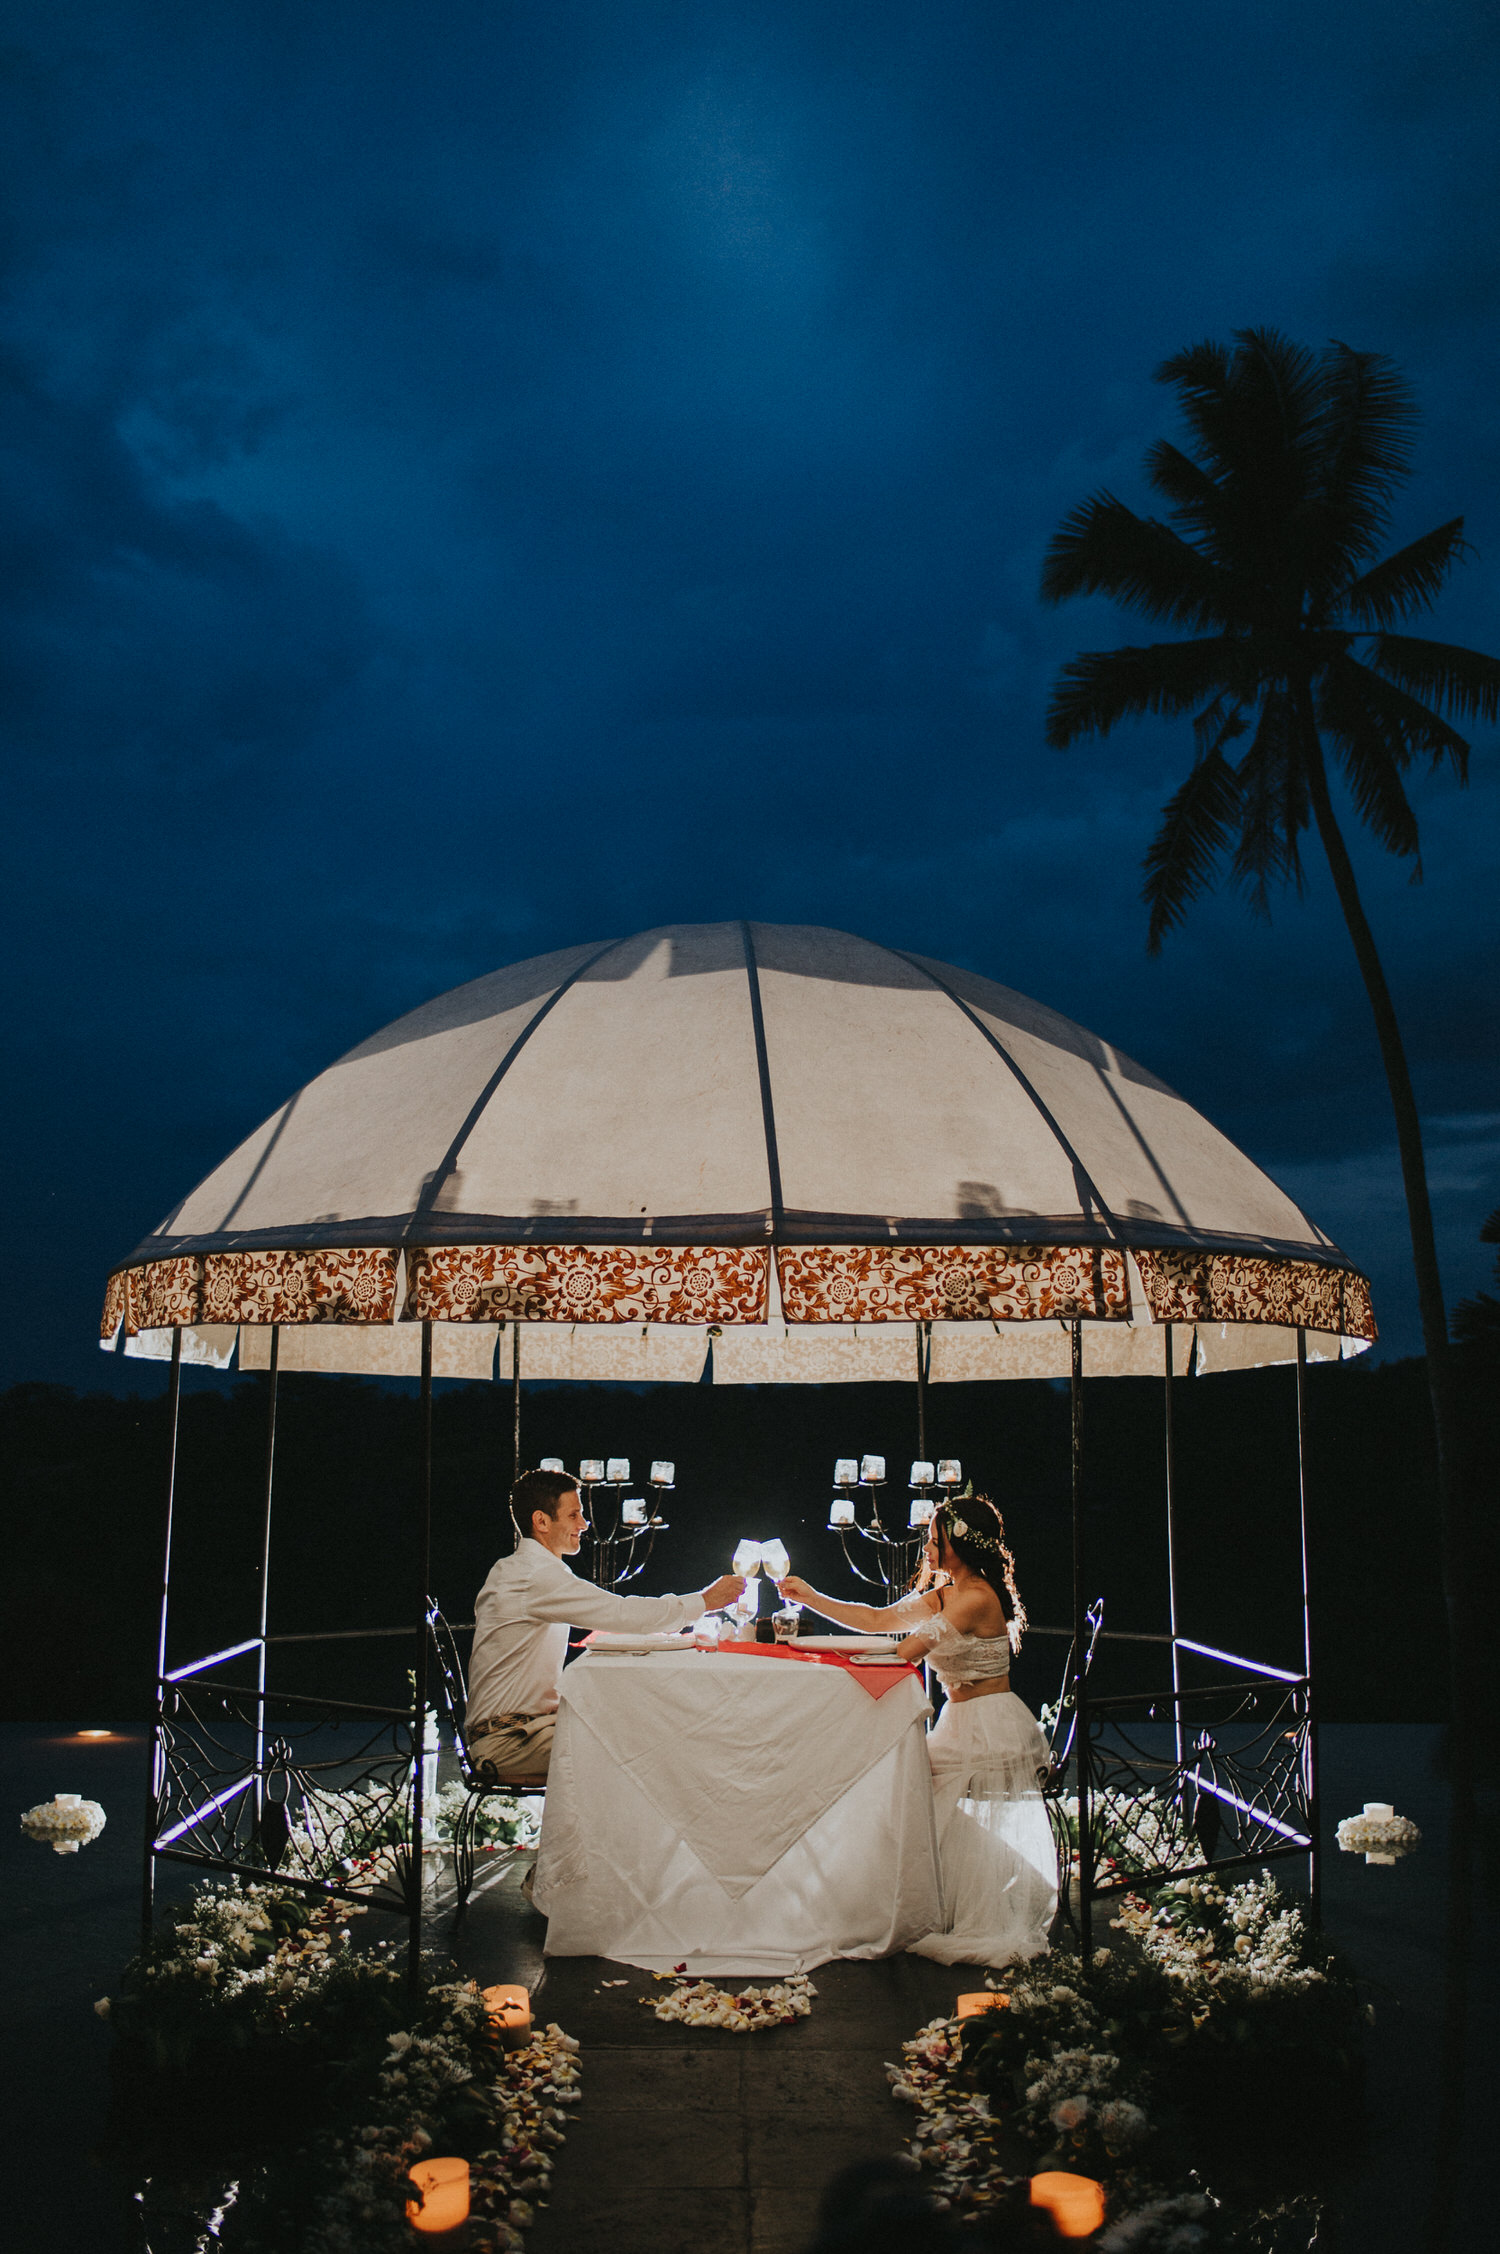 bali wedding - elopement - ubud wedding - diktatphotography - olga + Jason - 79